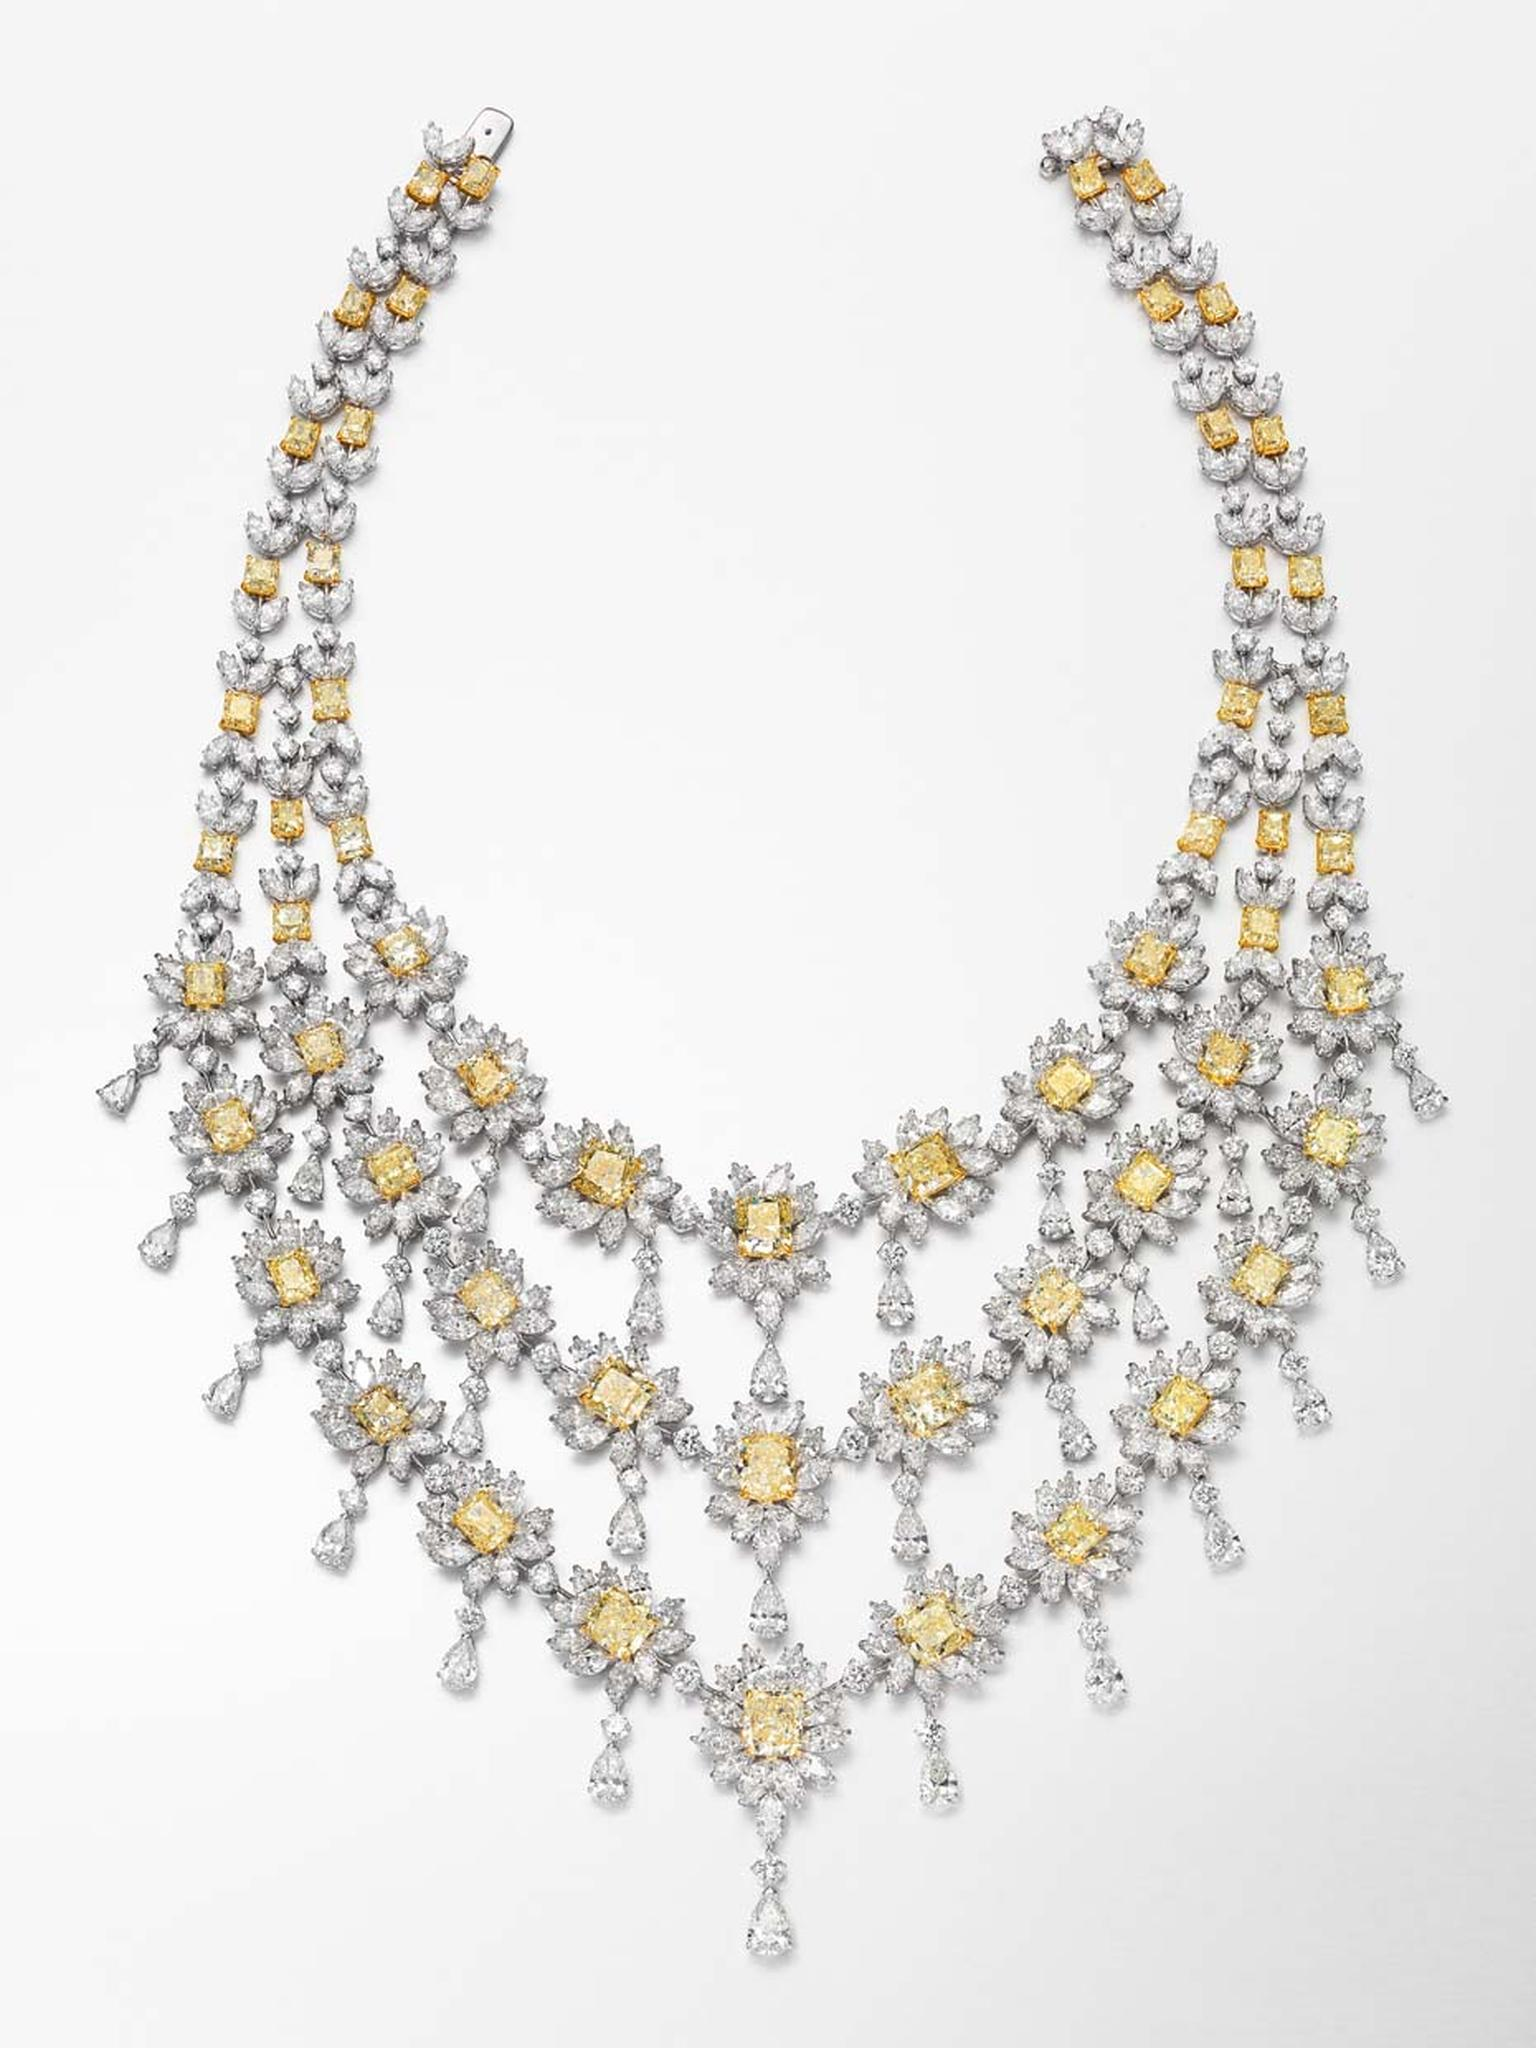 This spectacular three-tier white and Fancy yellow diamond necklace by Butani, which is presented with a pair of matching earrings, is from the High Jewellery collection, which is reserved for royalty.